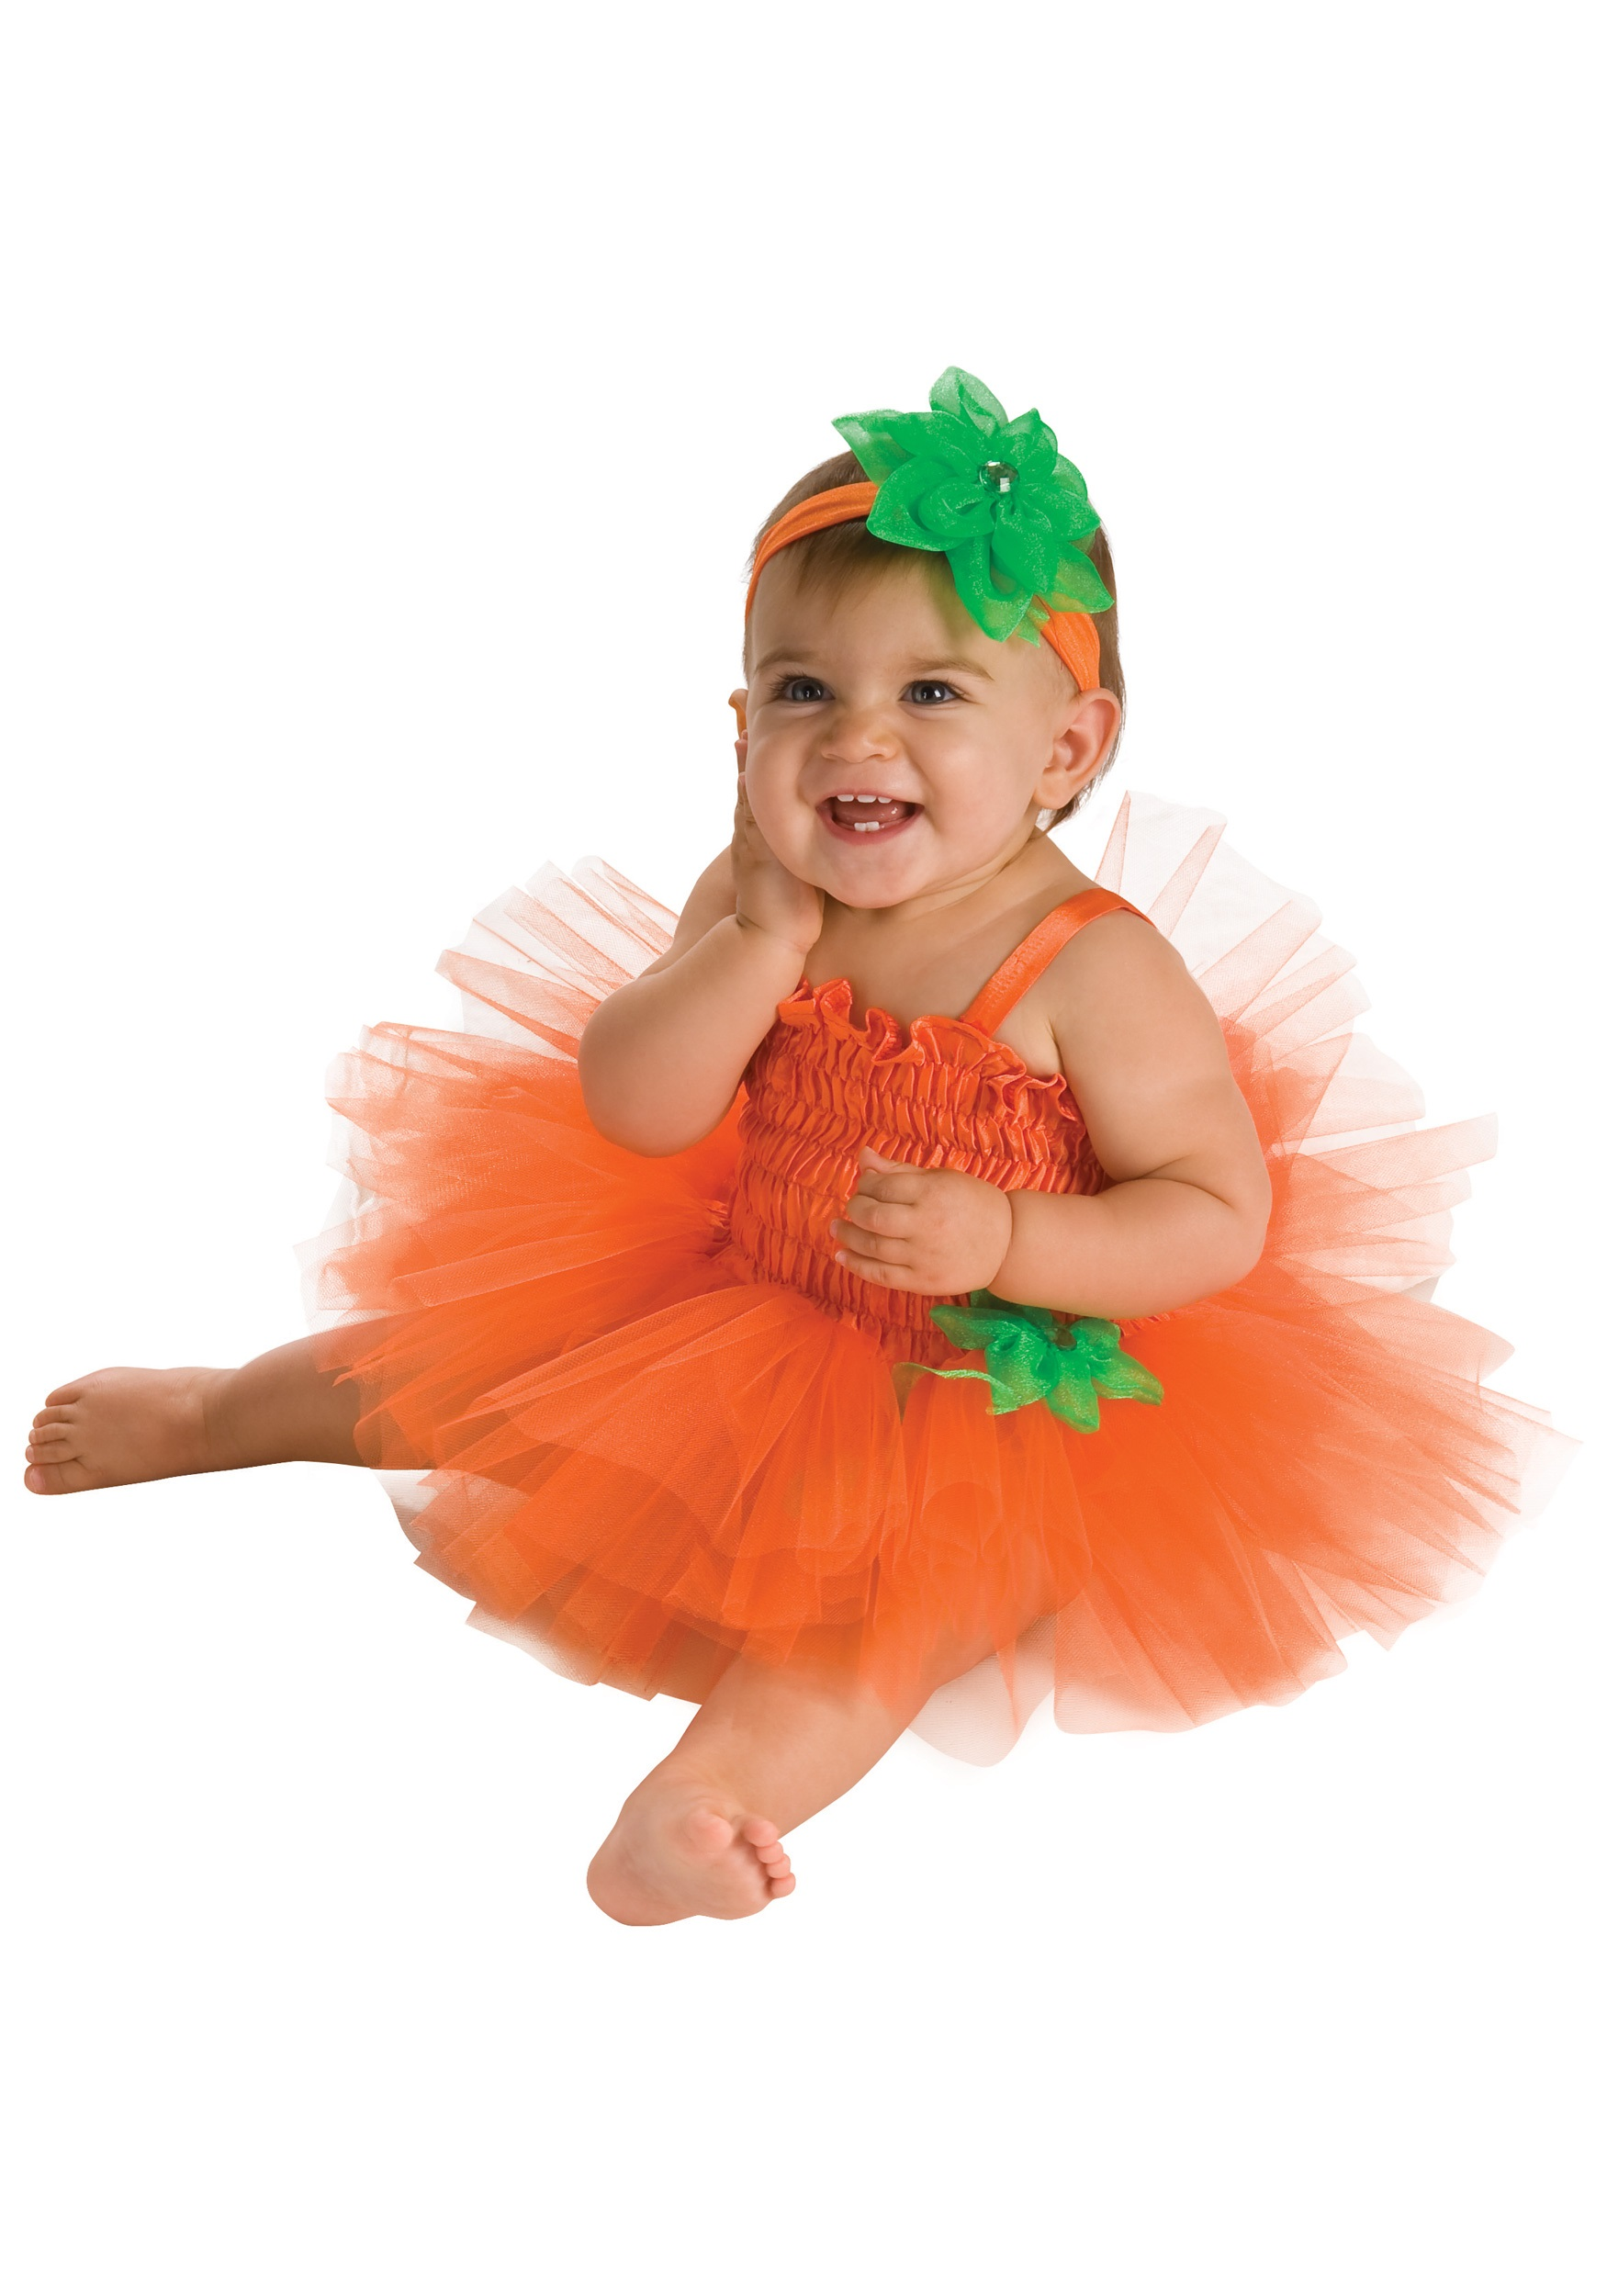 Halloween Costume 6 9 Months Uk.Infant Pumpkin Tutu Costume Dress